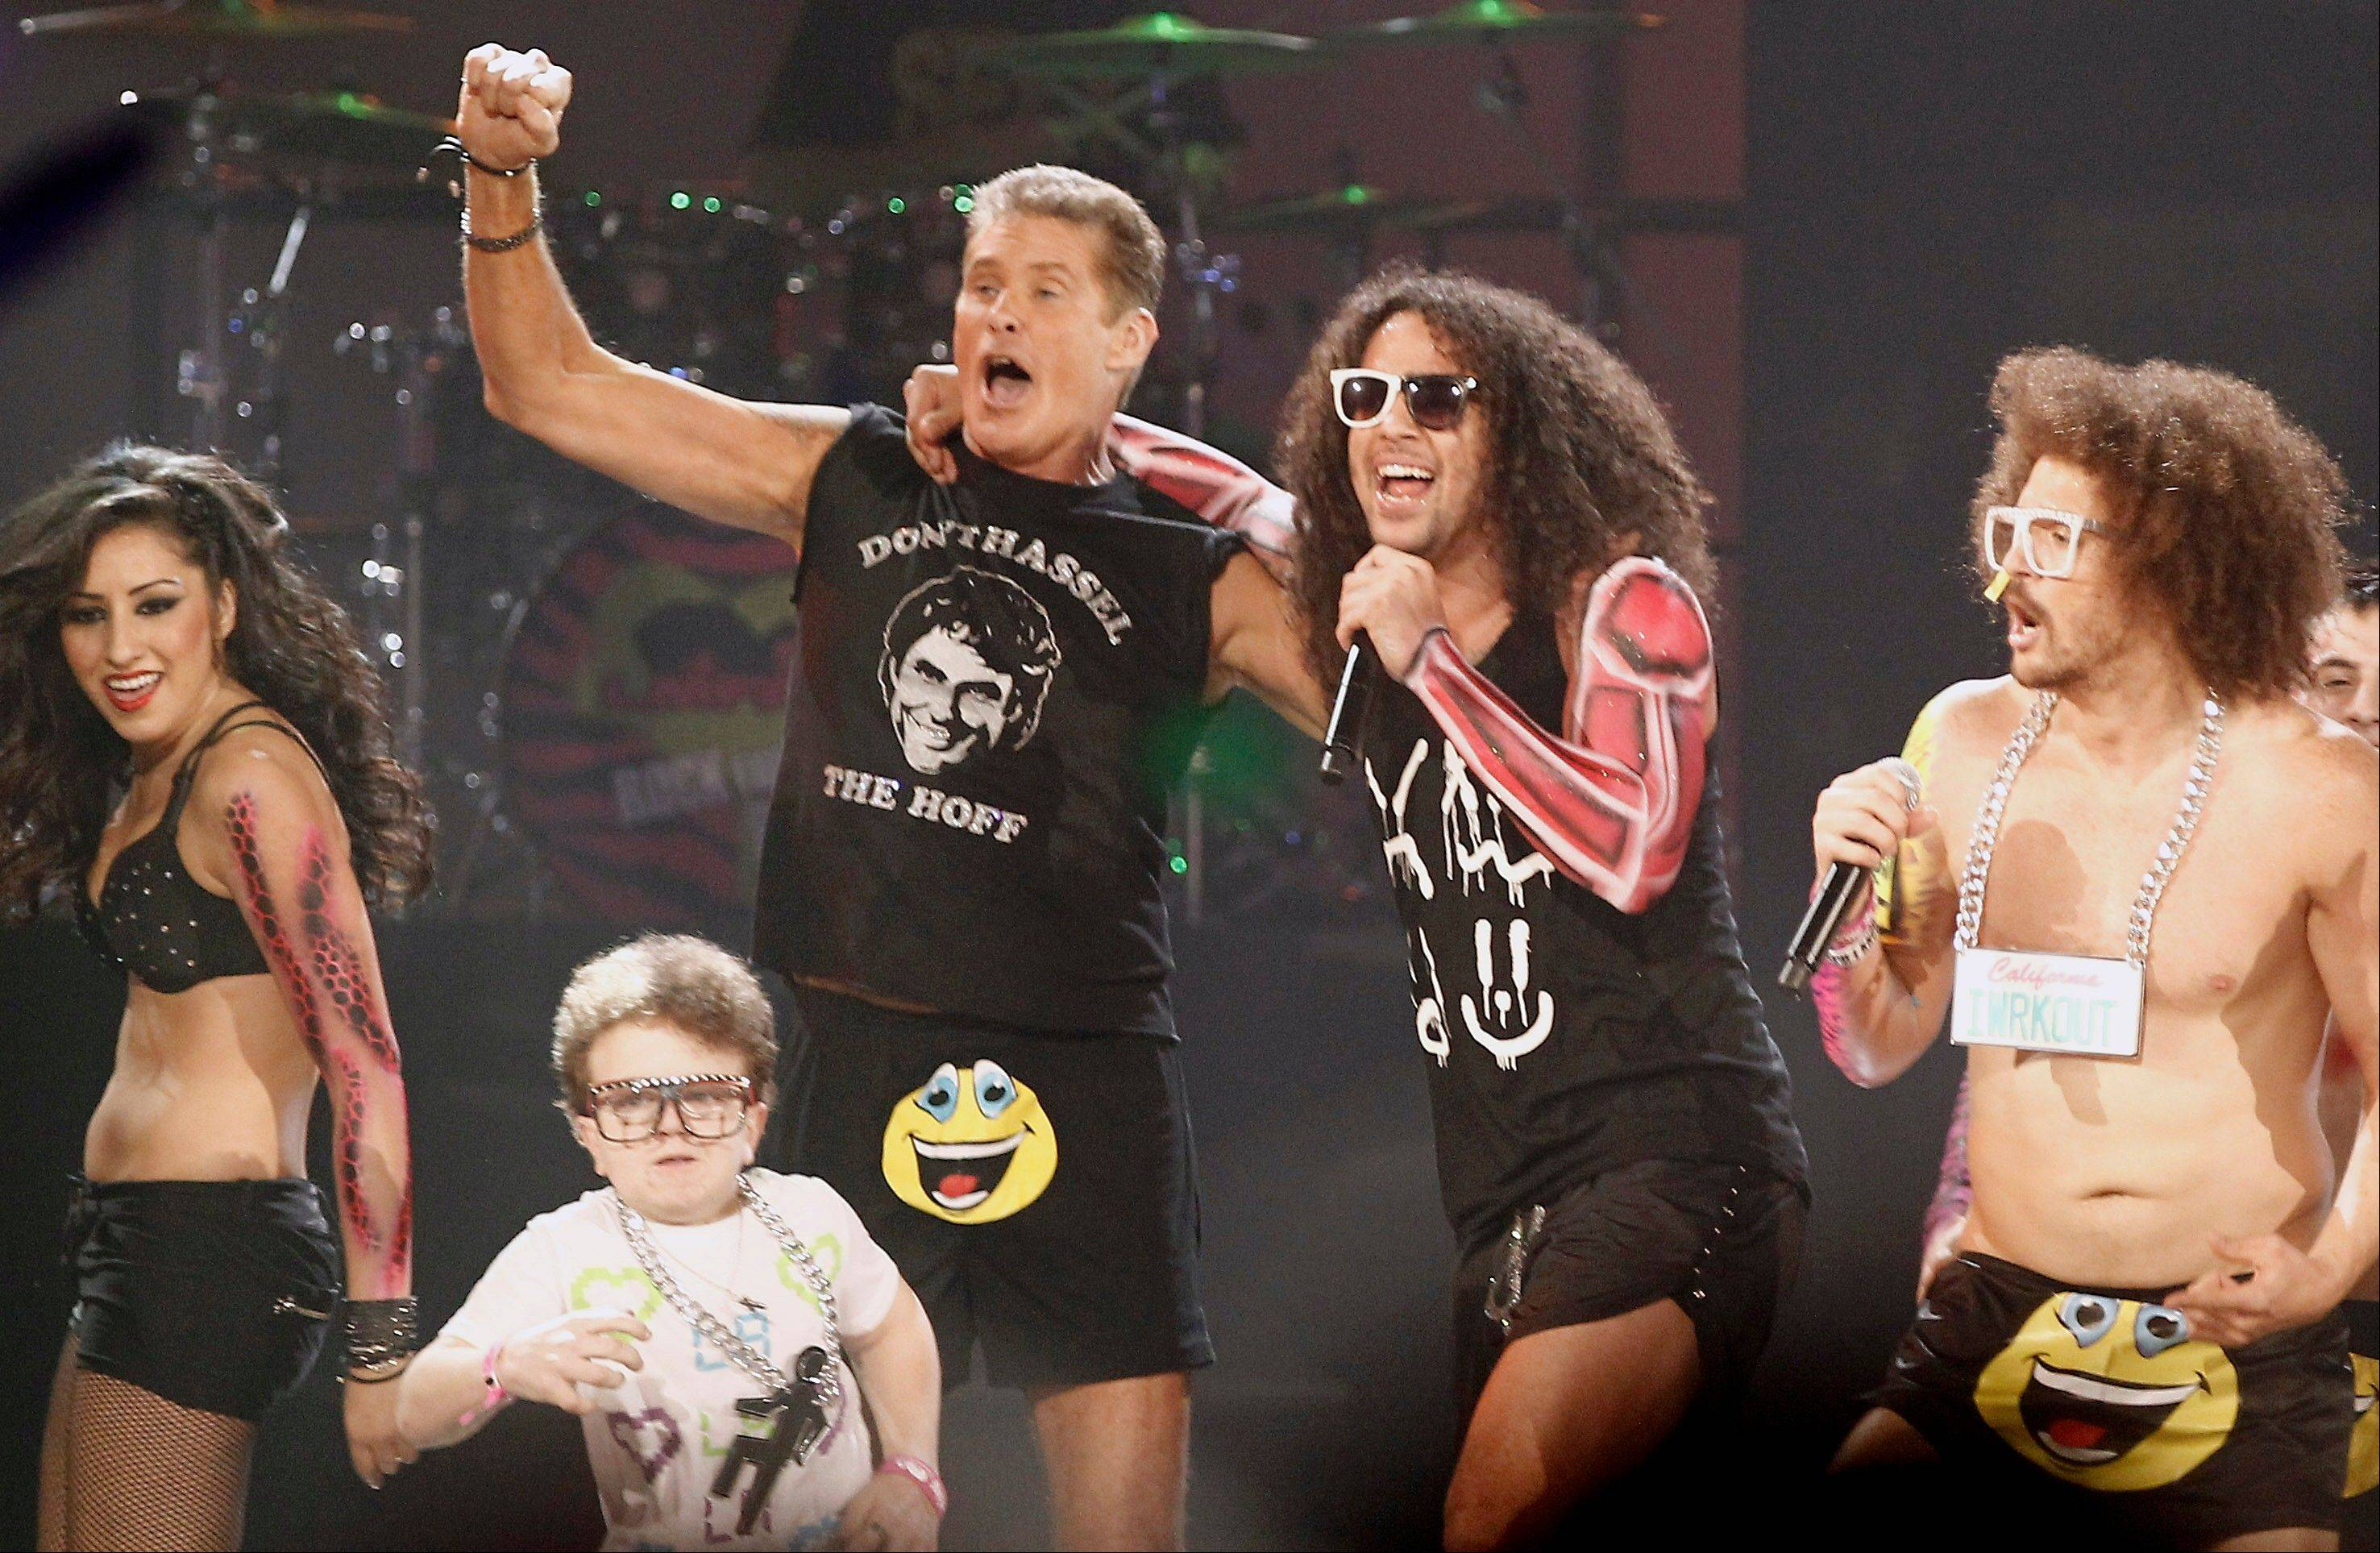 Keenan Cahill, David Hasselhoff, SkyBlu, and Redfoo are seen onstage as the music group LMFAO performs onstage at the 39th Annual American Music Awards on Sunday, Nov. 20, 2011 in Los Angeles.